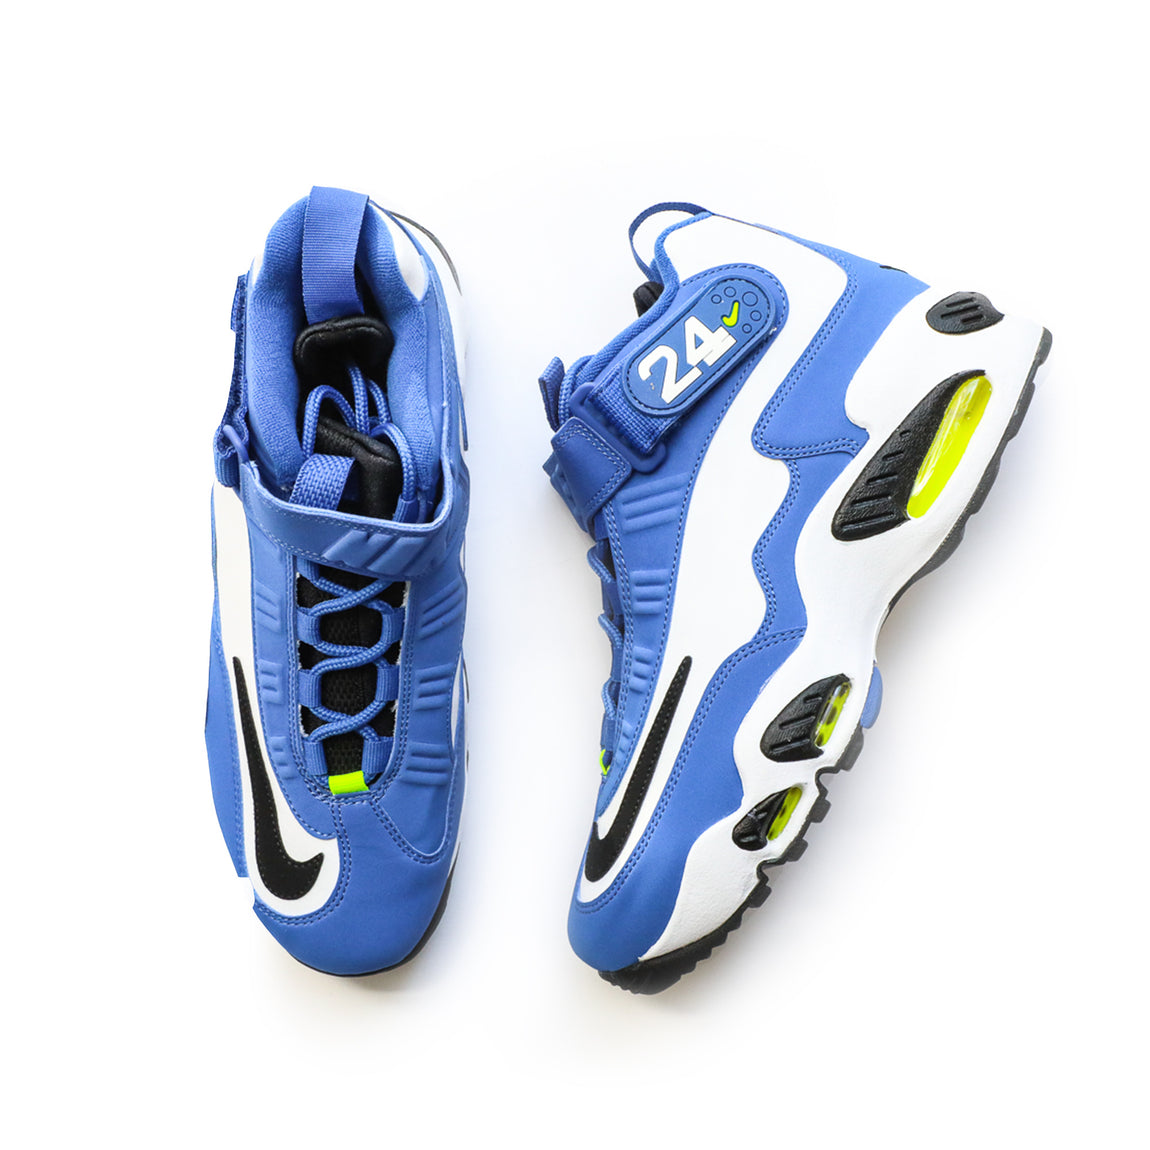 Nike Air Griffey Max 1 (Varsity Royal/Black/Volt) - Nike Air Griffey Max 1 (Varsity Royal/Black/Volt) -